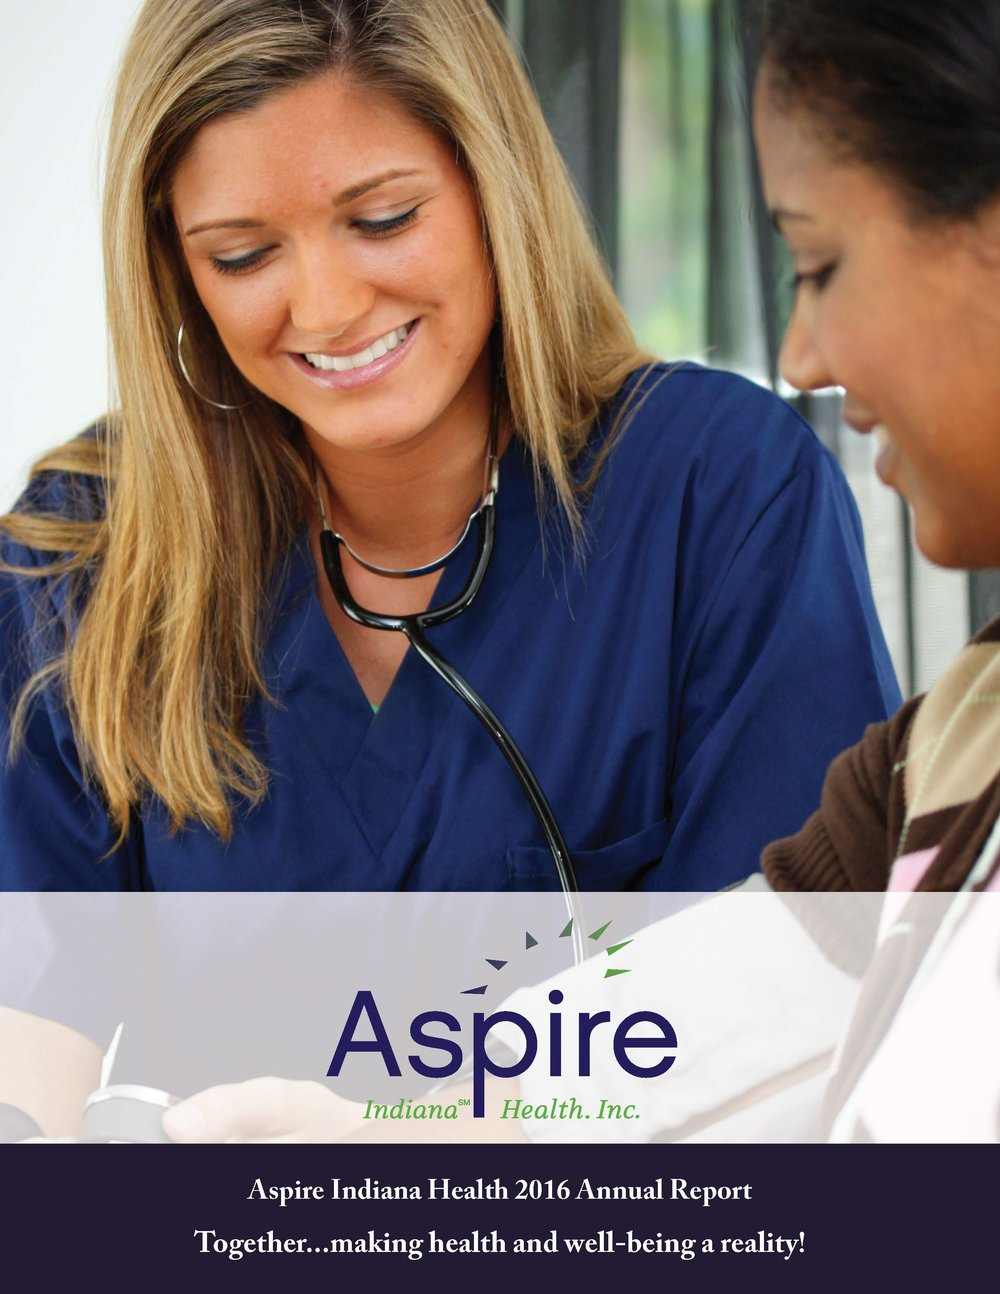 Aspire Indiana Health Annual Report 2016